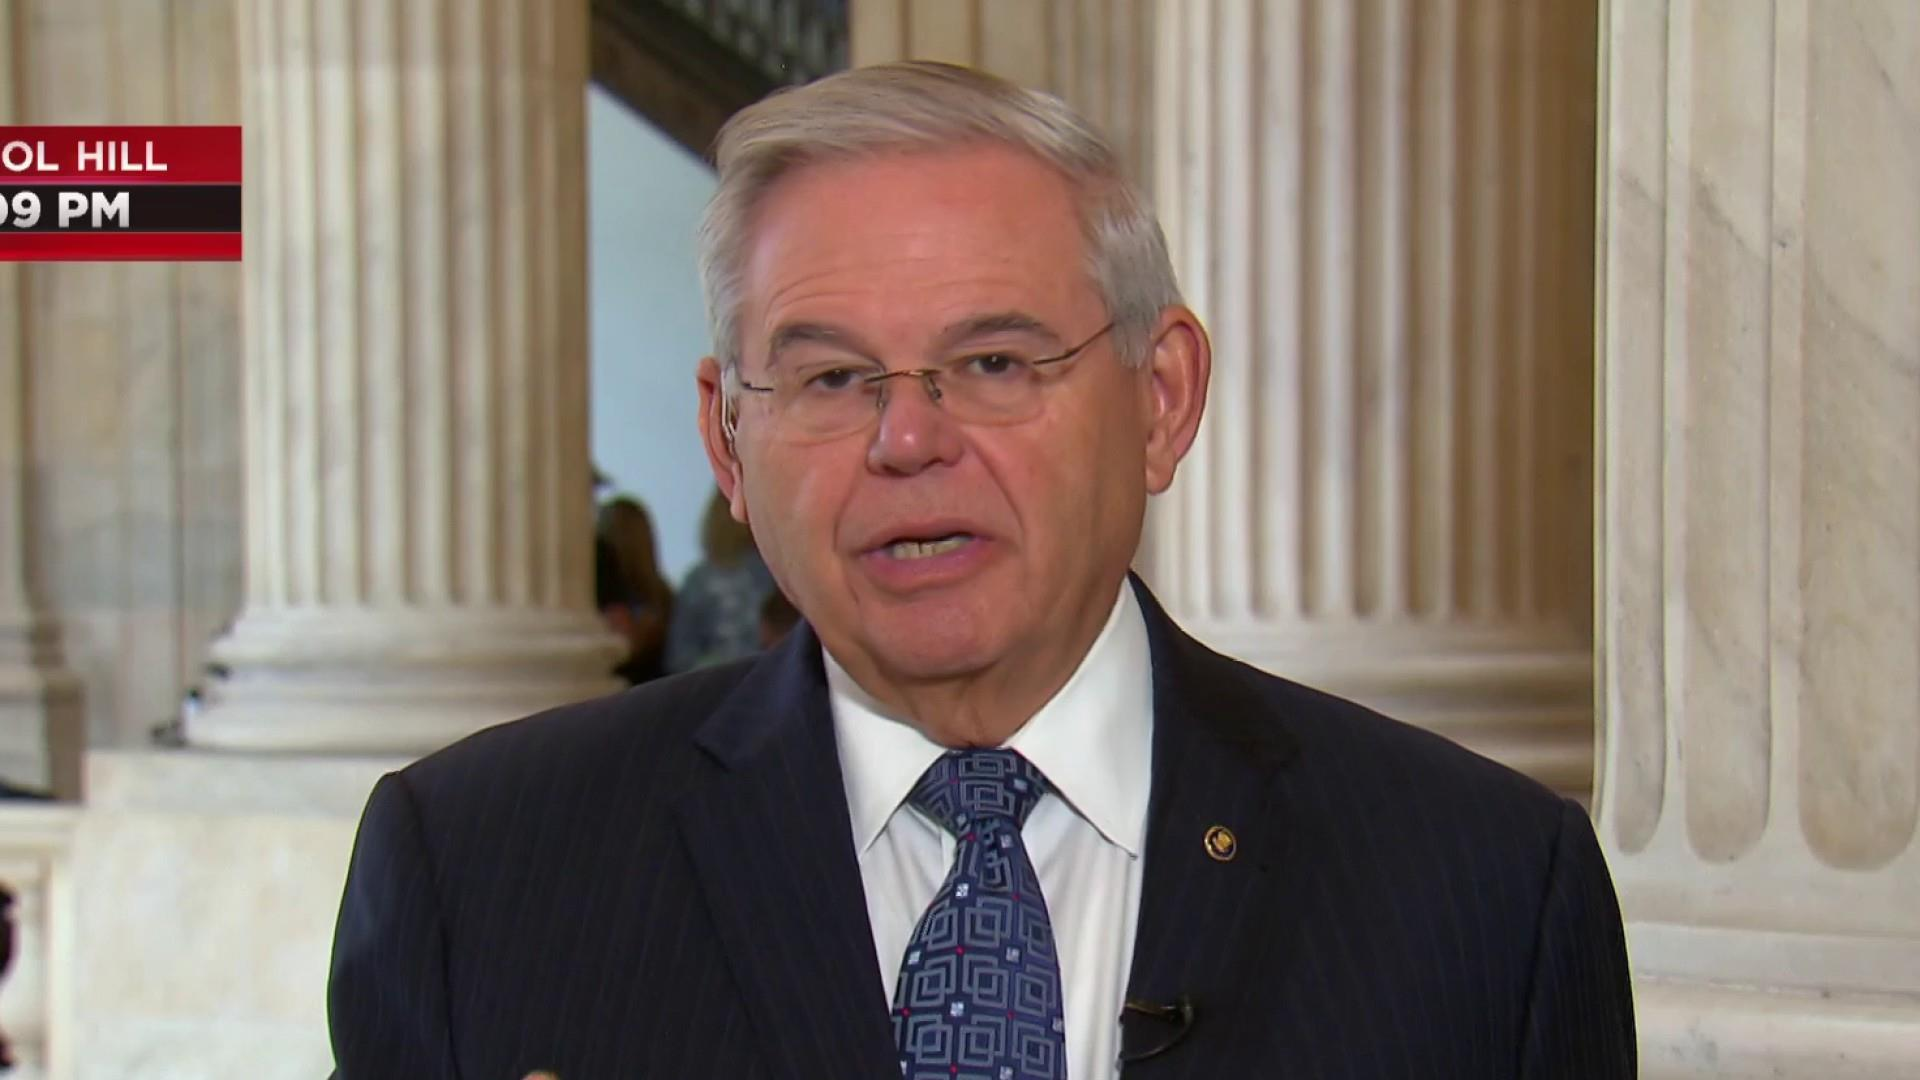 Sen. Menendez: diplomatic surge must follow Trump's maximum pressure on Iran